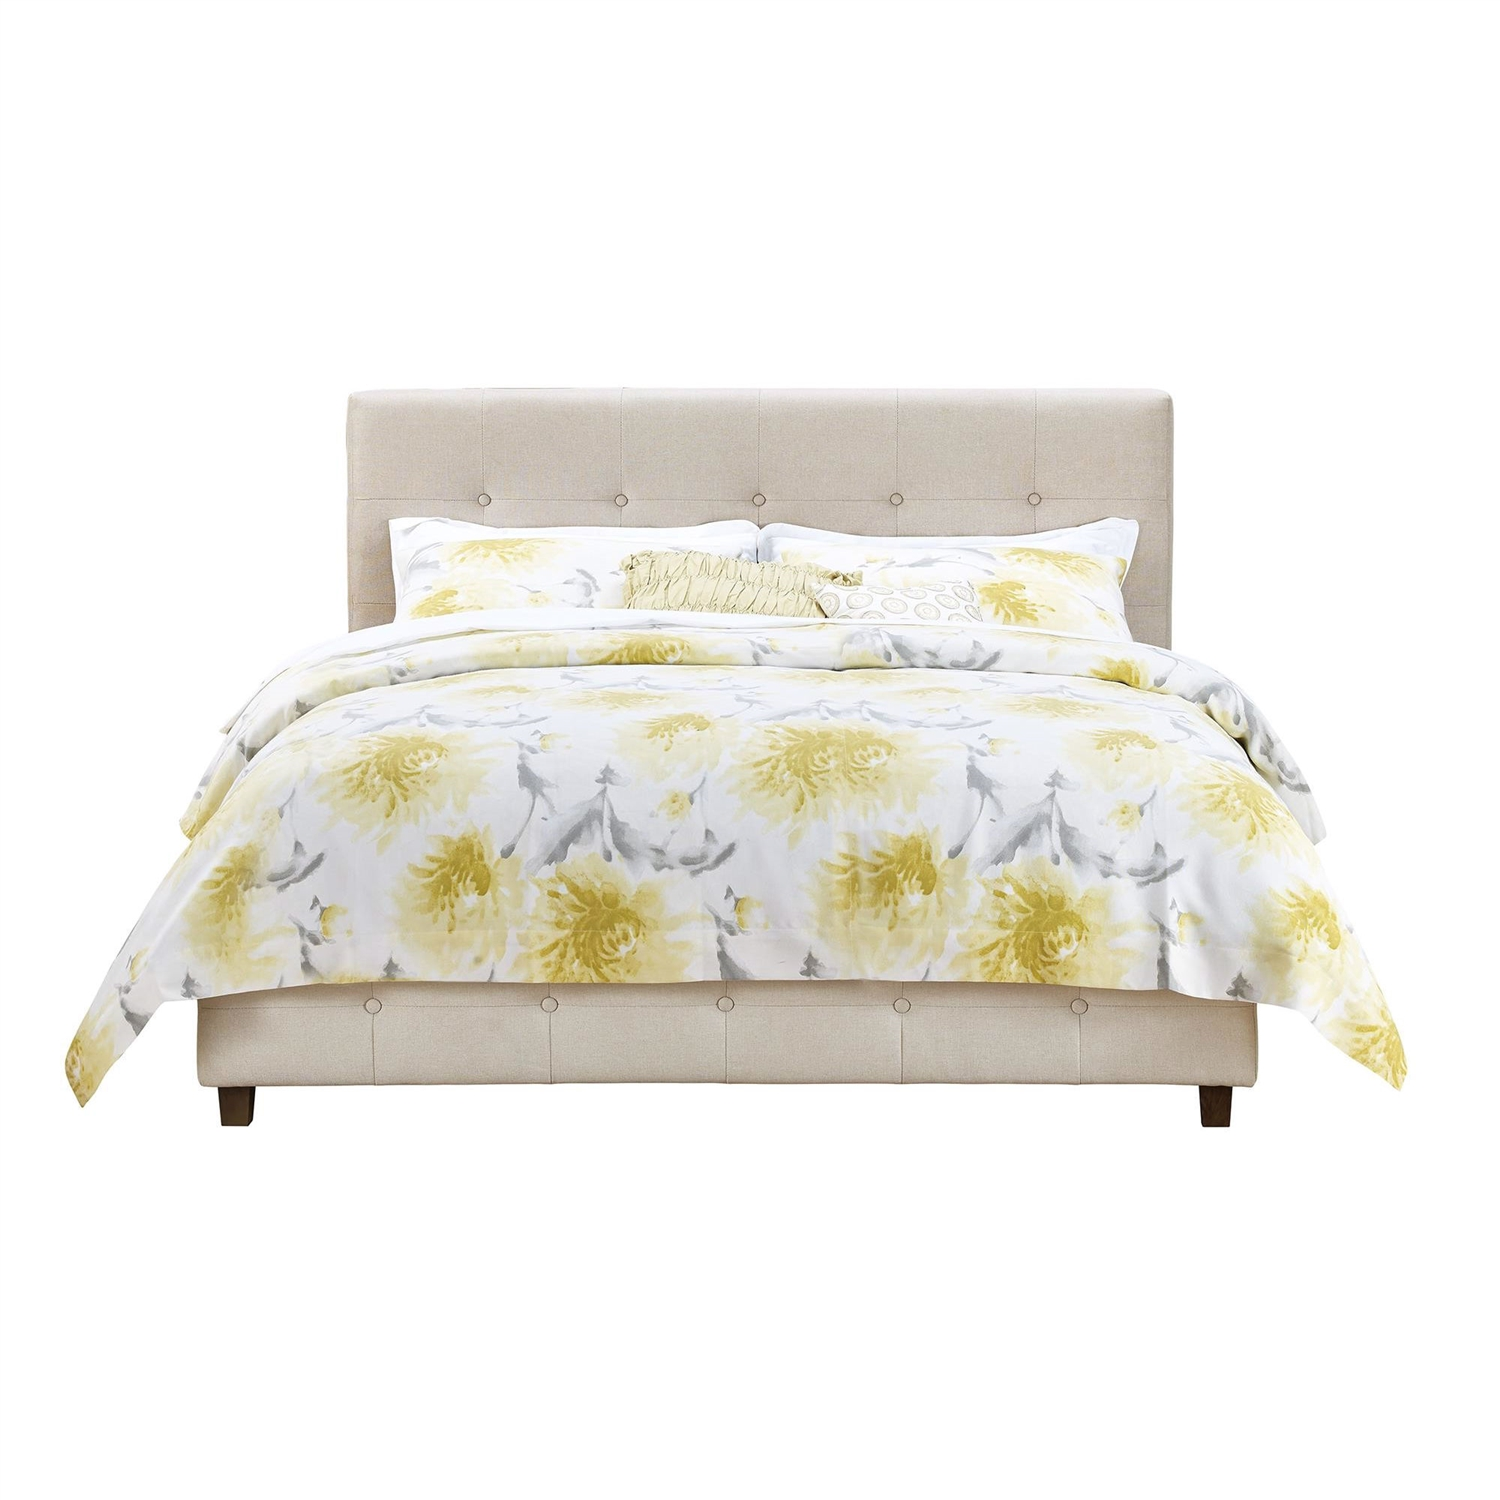 Queen Tan Linen Upholstered Platform Bed Frame With Button Tufted Headboard Fastfurnishings Com